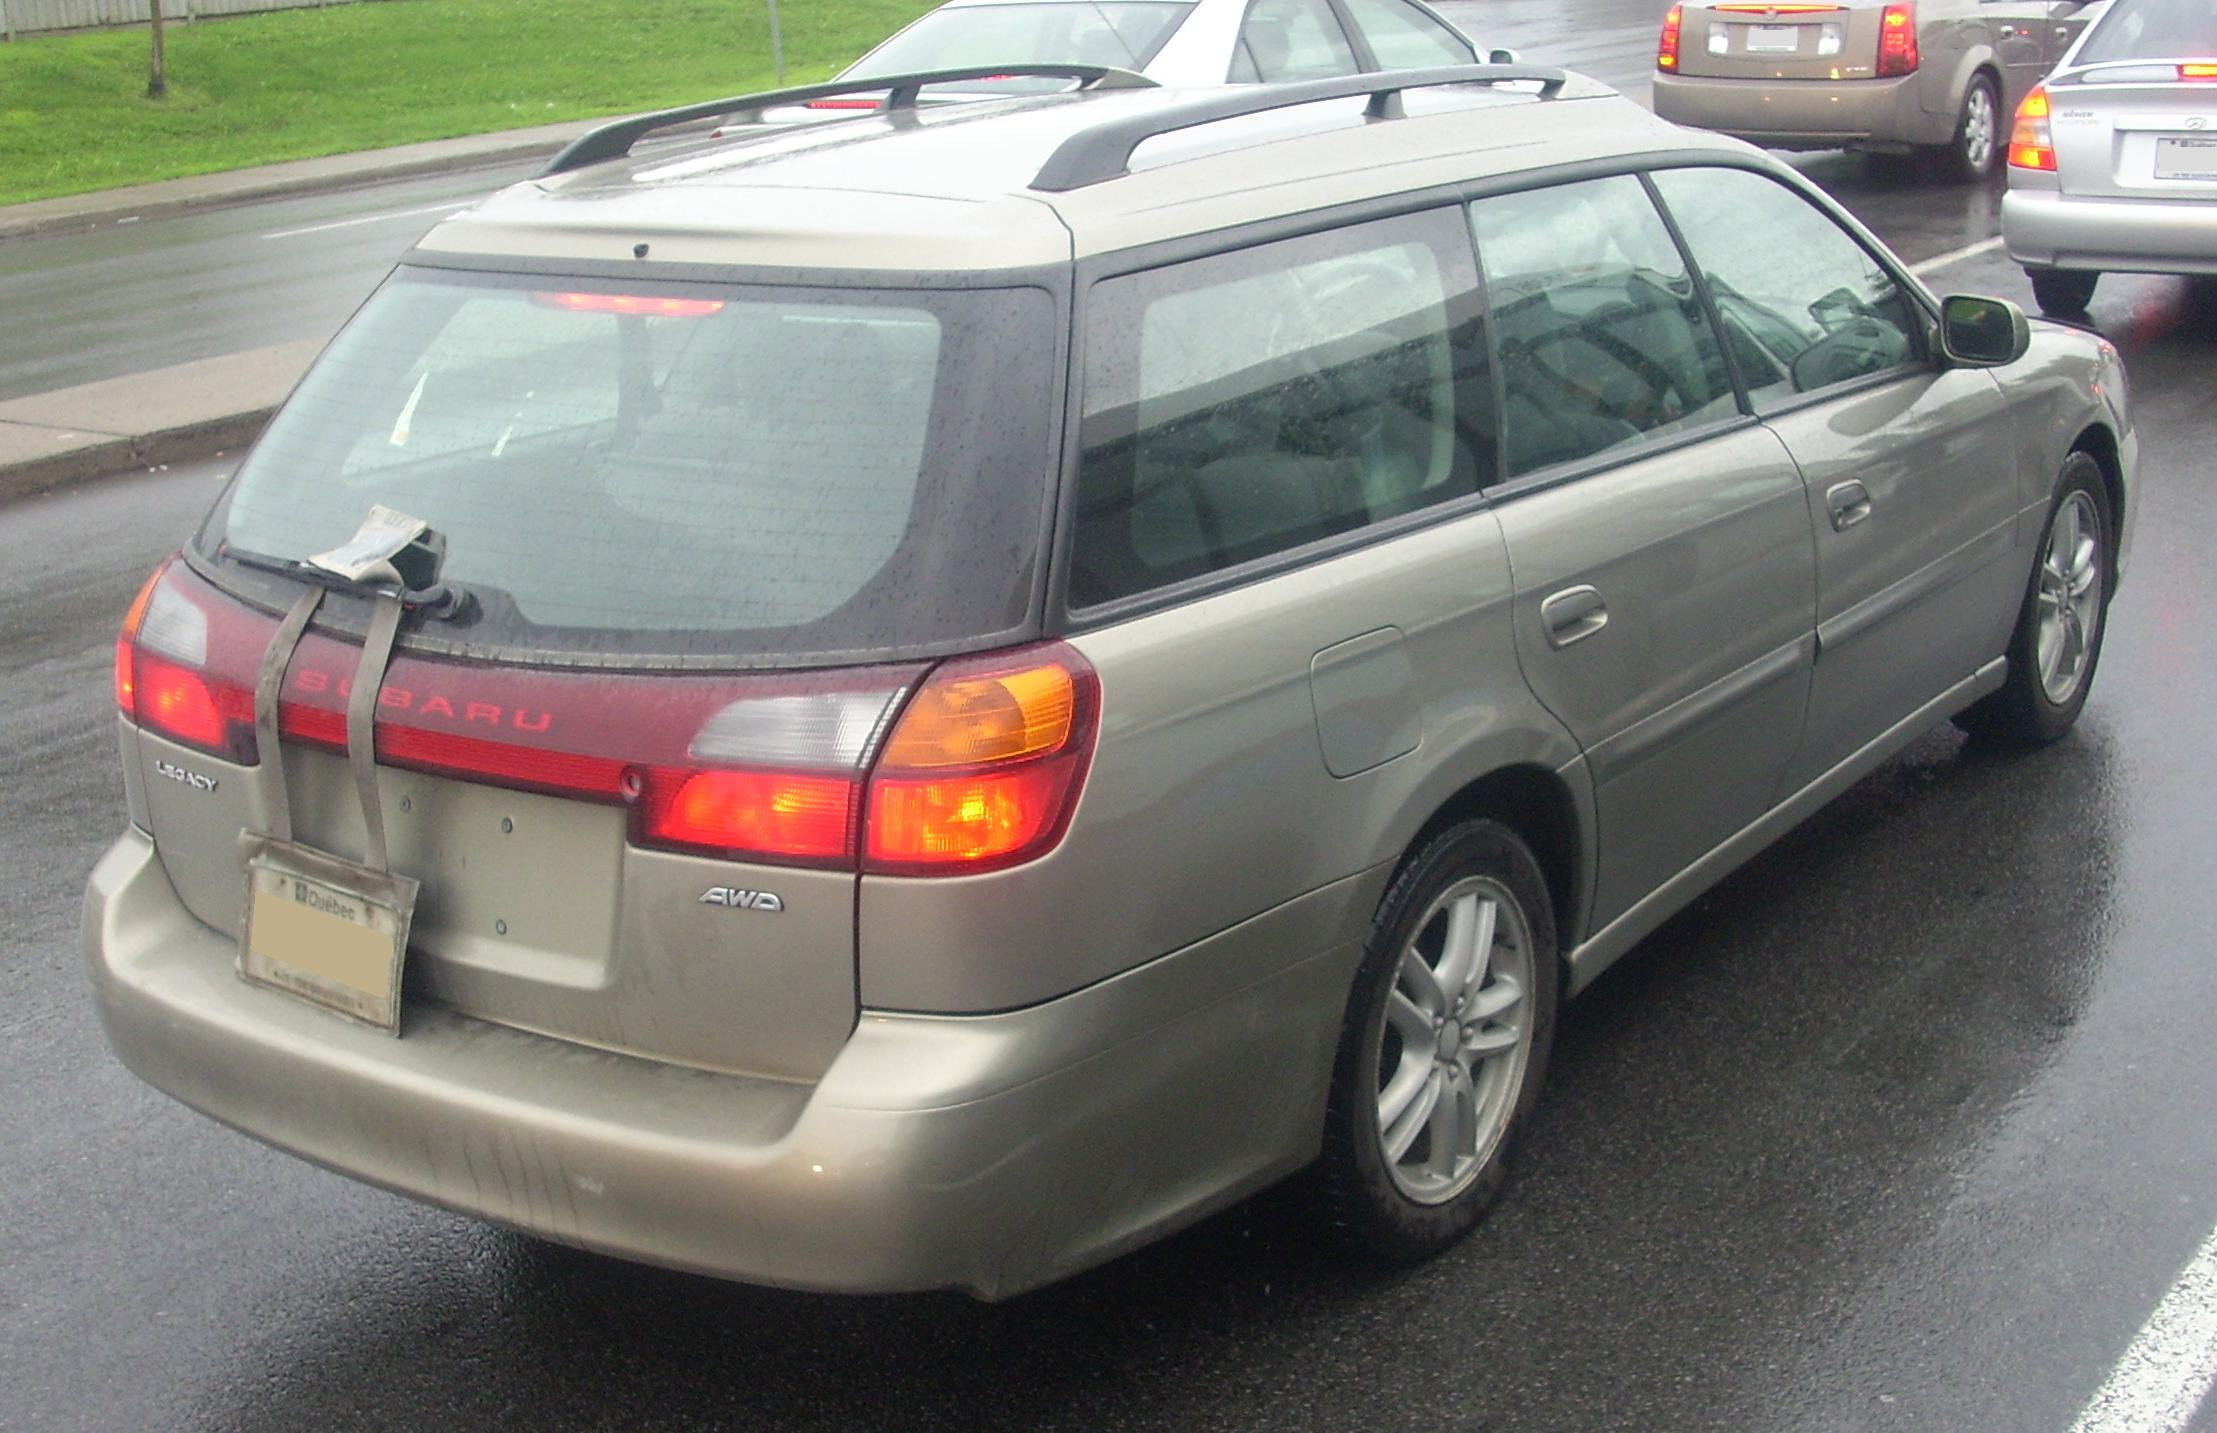 2003 subaru legacy information and photos zombiedrive 2003 subaru legacy 2 subaru legacy 2 vanachro Images